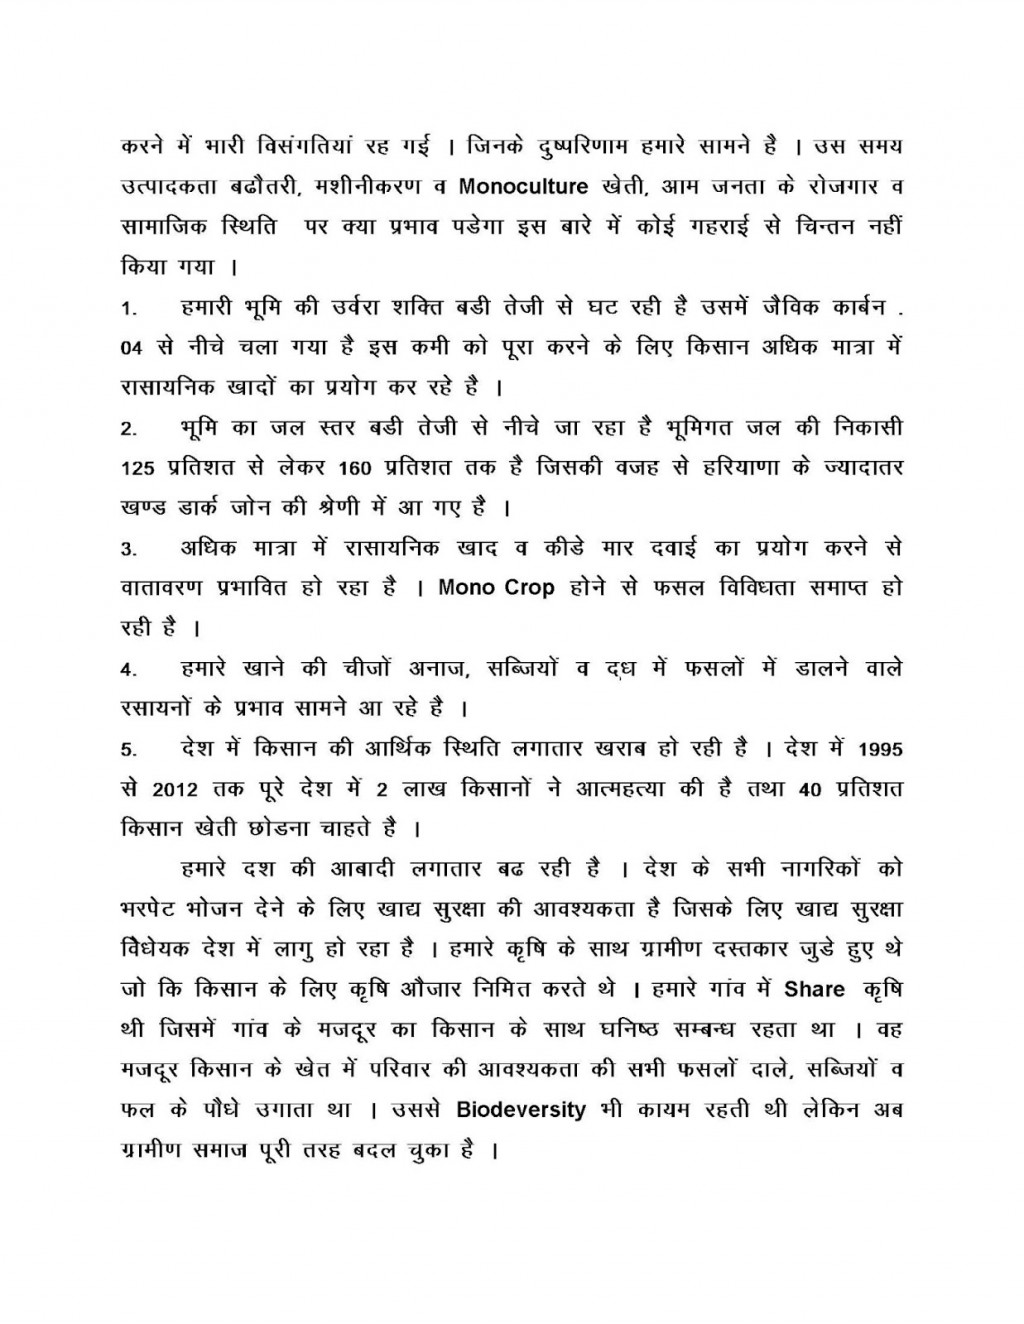 008 Essay Exampleworkdr Rajindersingh Page 2 On Electricity In Imposing Hindi Veto Power Youth Problem Language Large